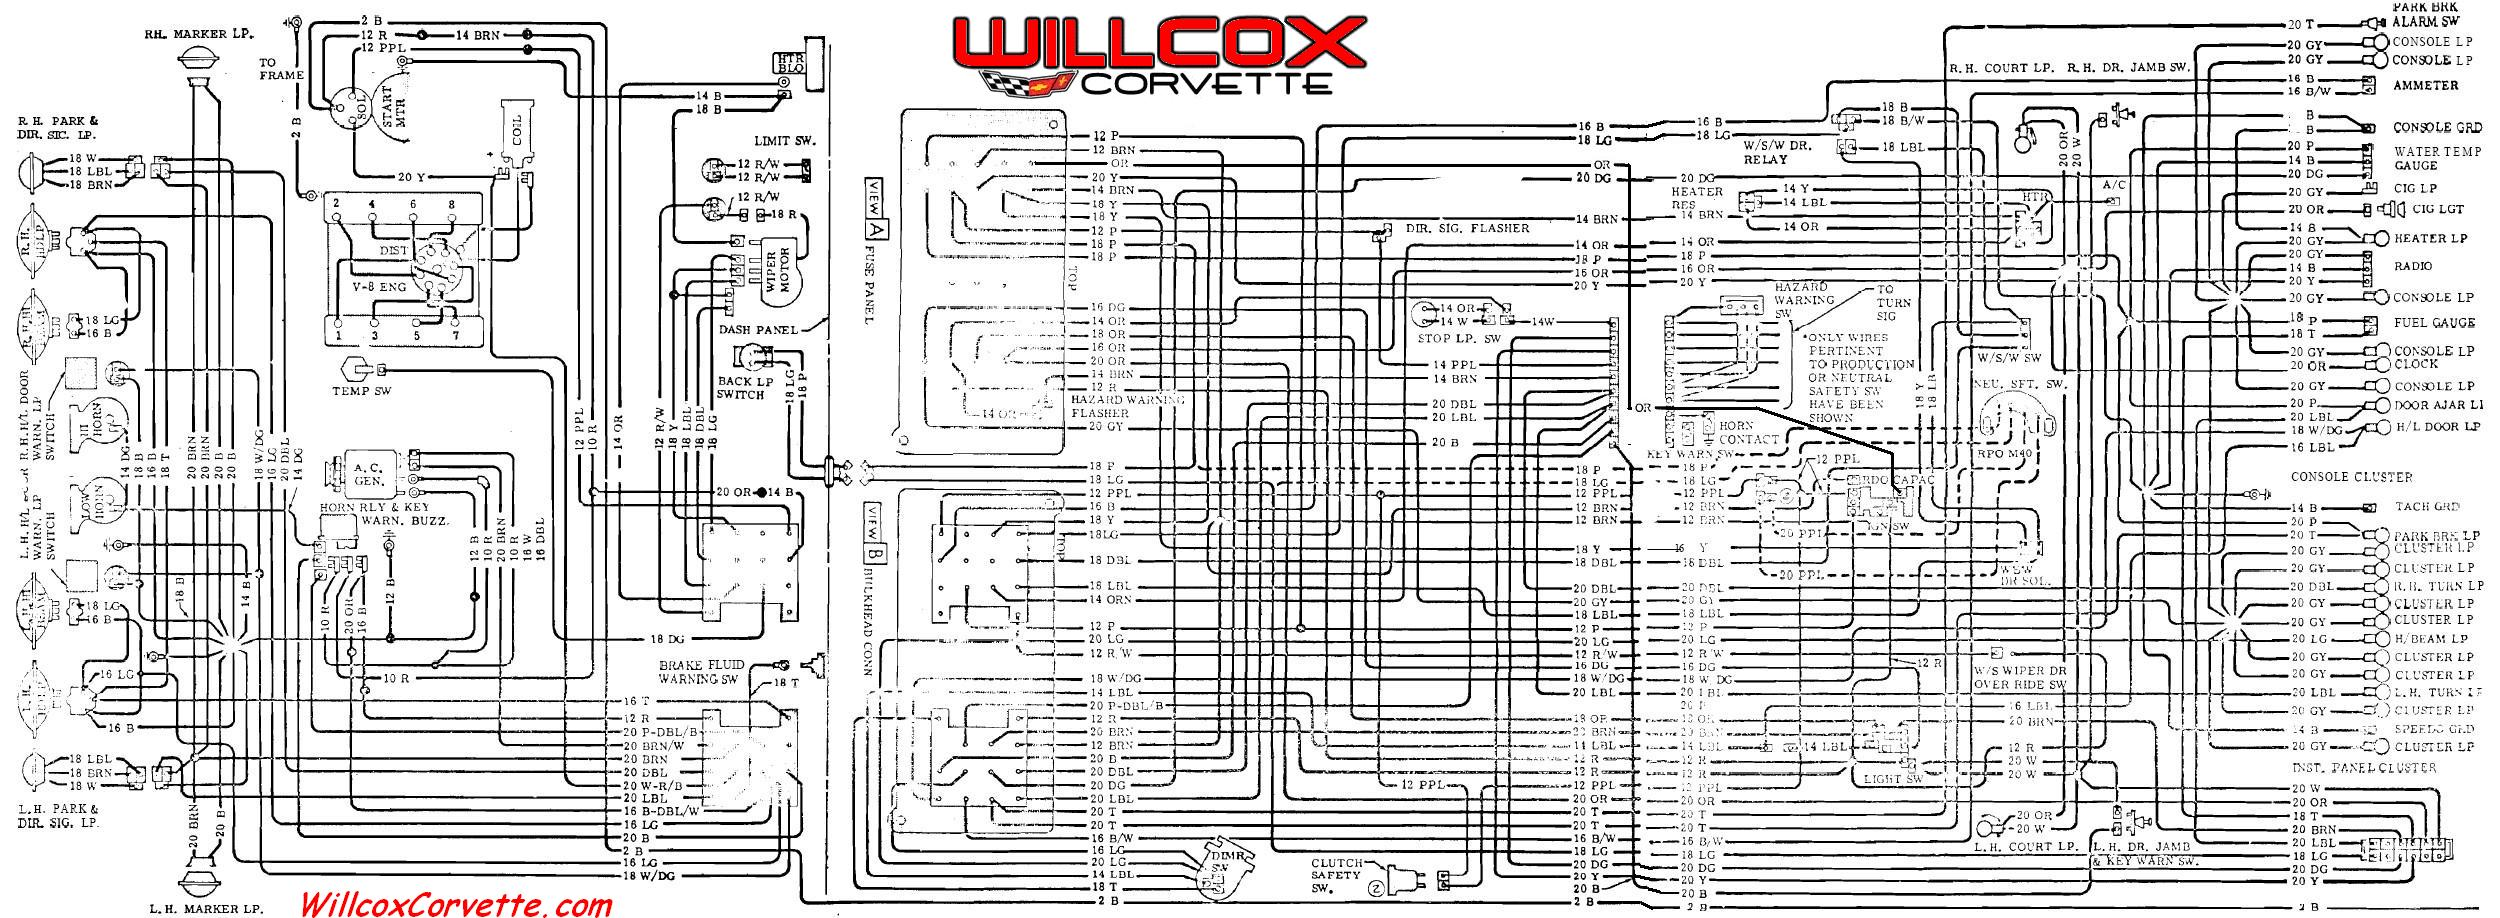 1967 corvette wiring diagram 1967 wiring diagrams online description 1969 corvette wiring diagram main and engine compartment correct on corvette wiring diagram